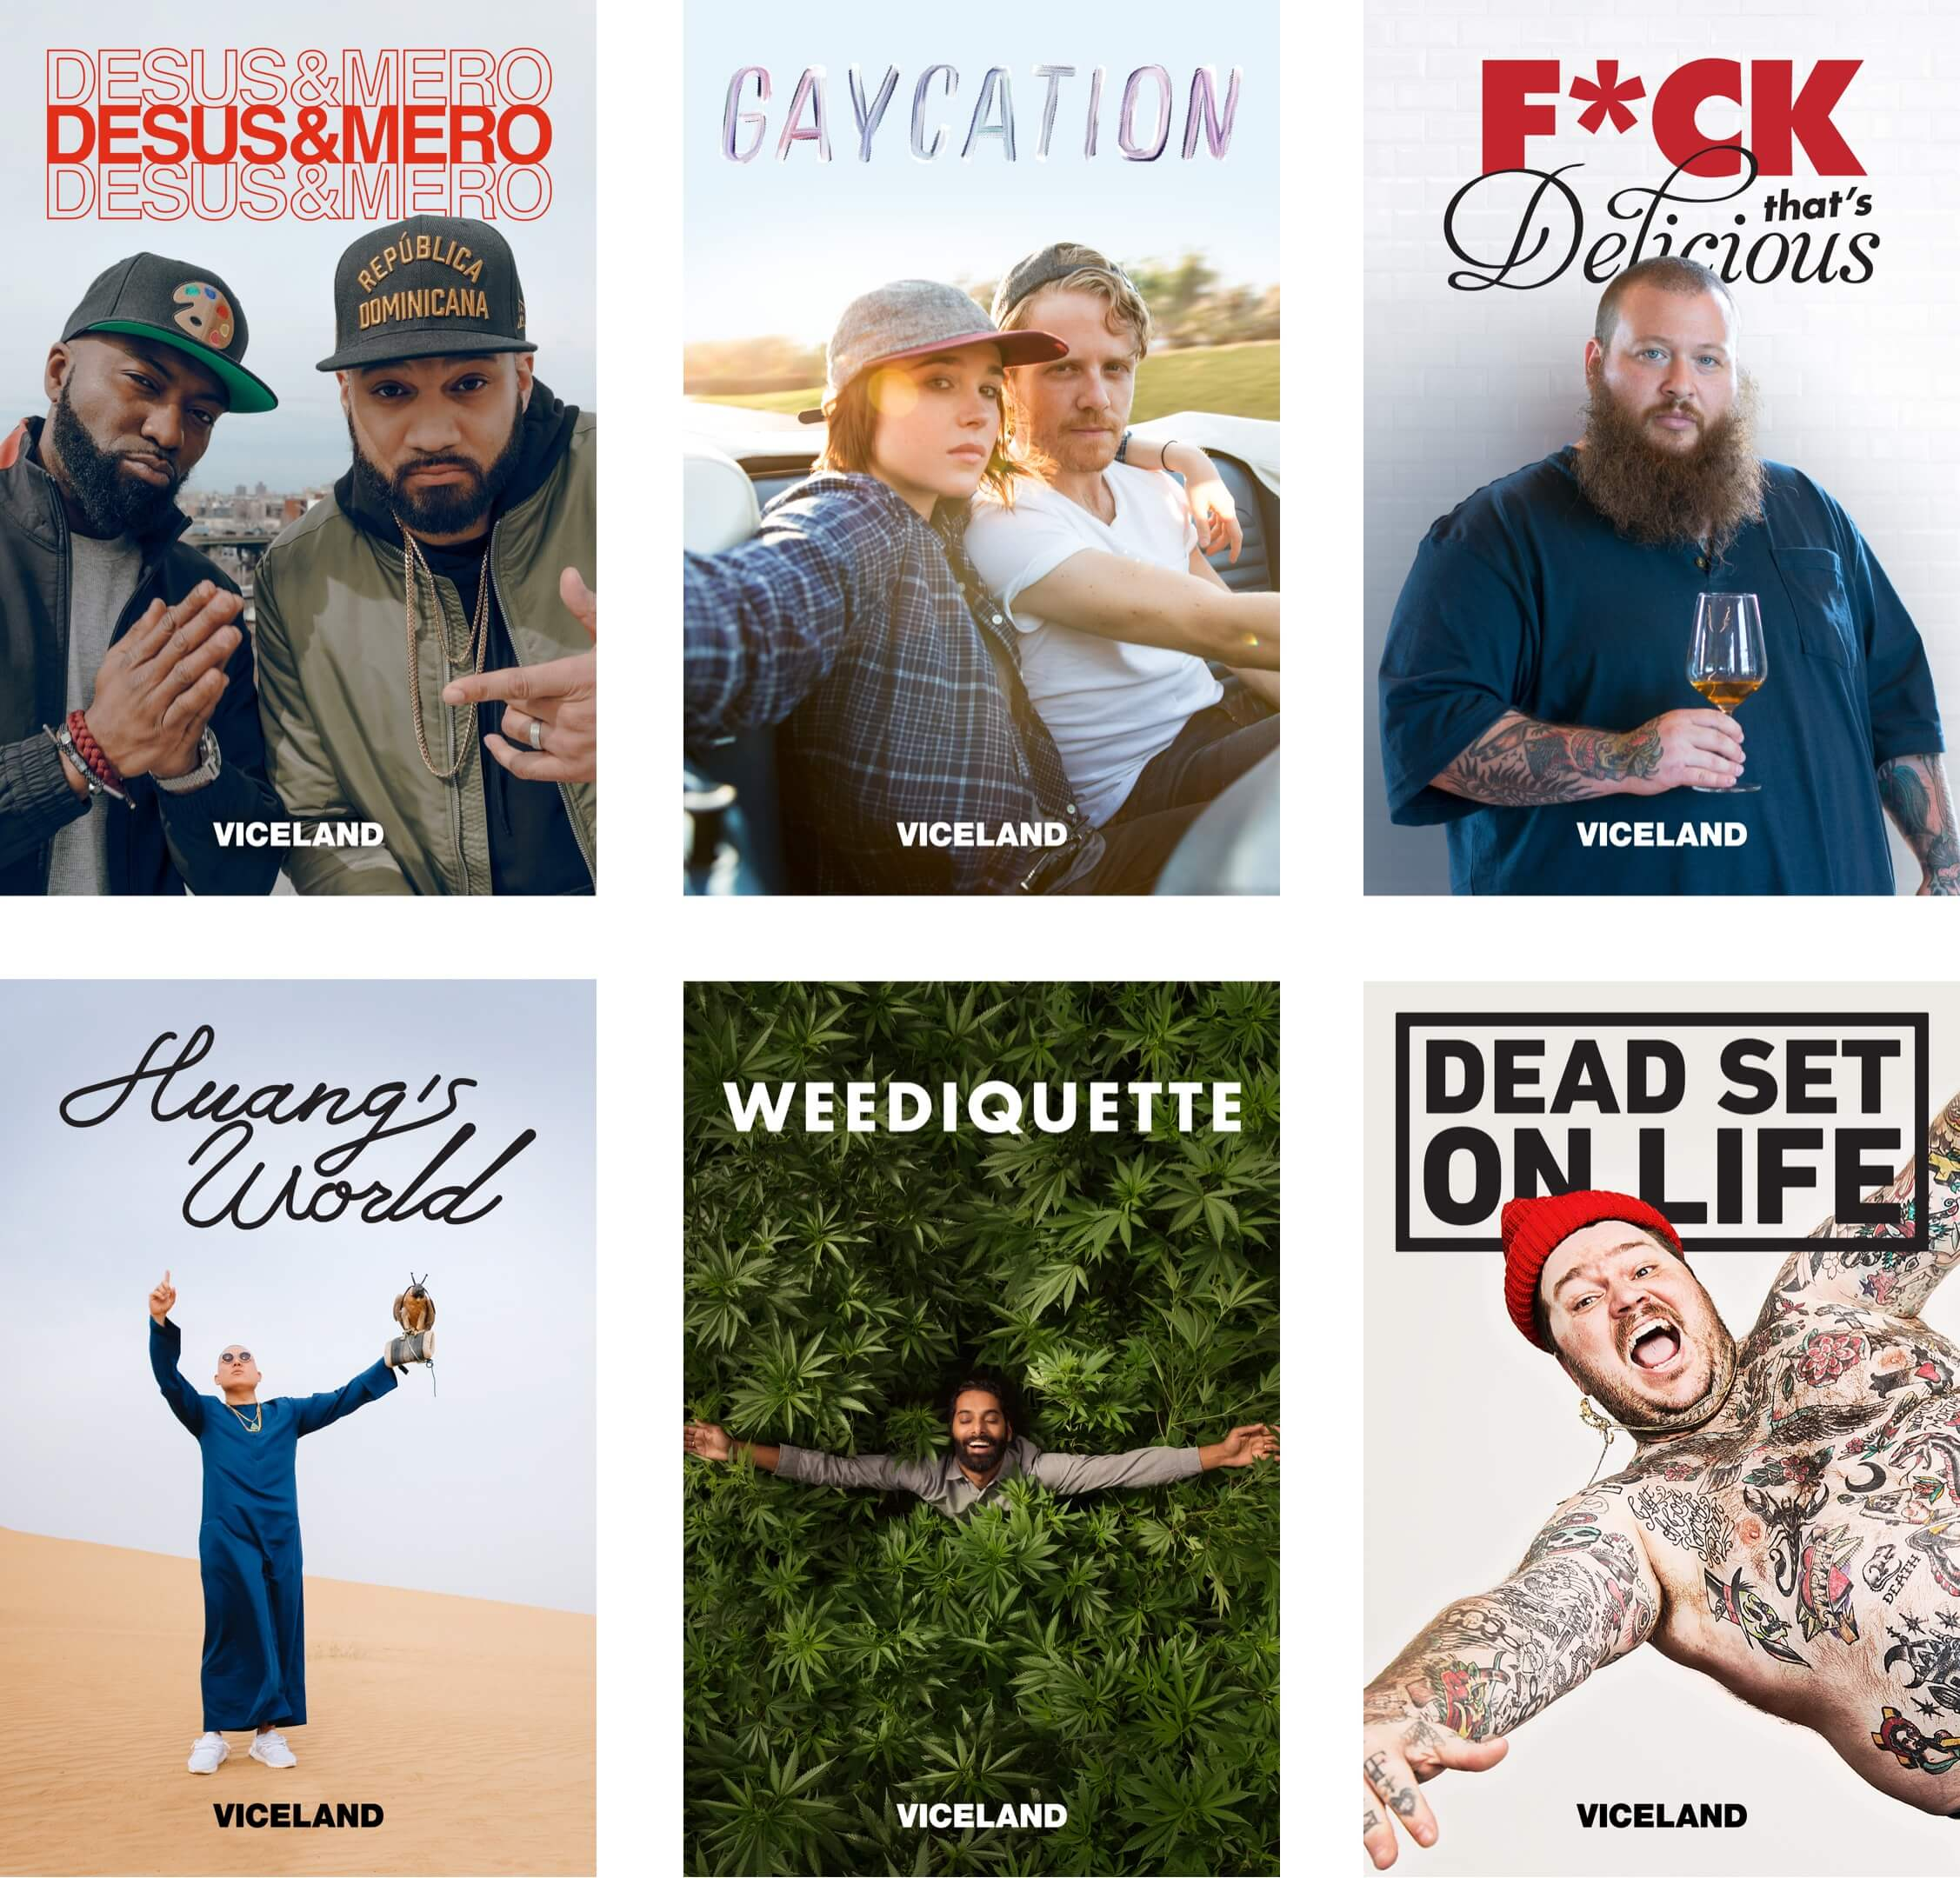 Viceland Marketing Show Poster Designs